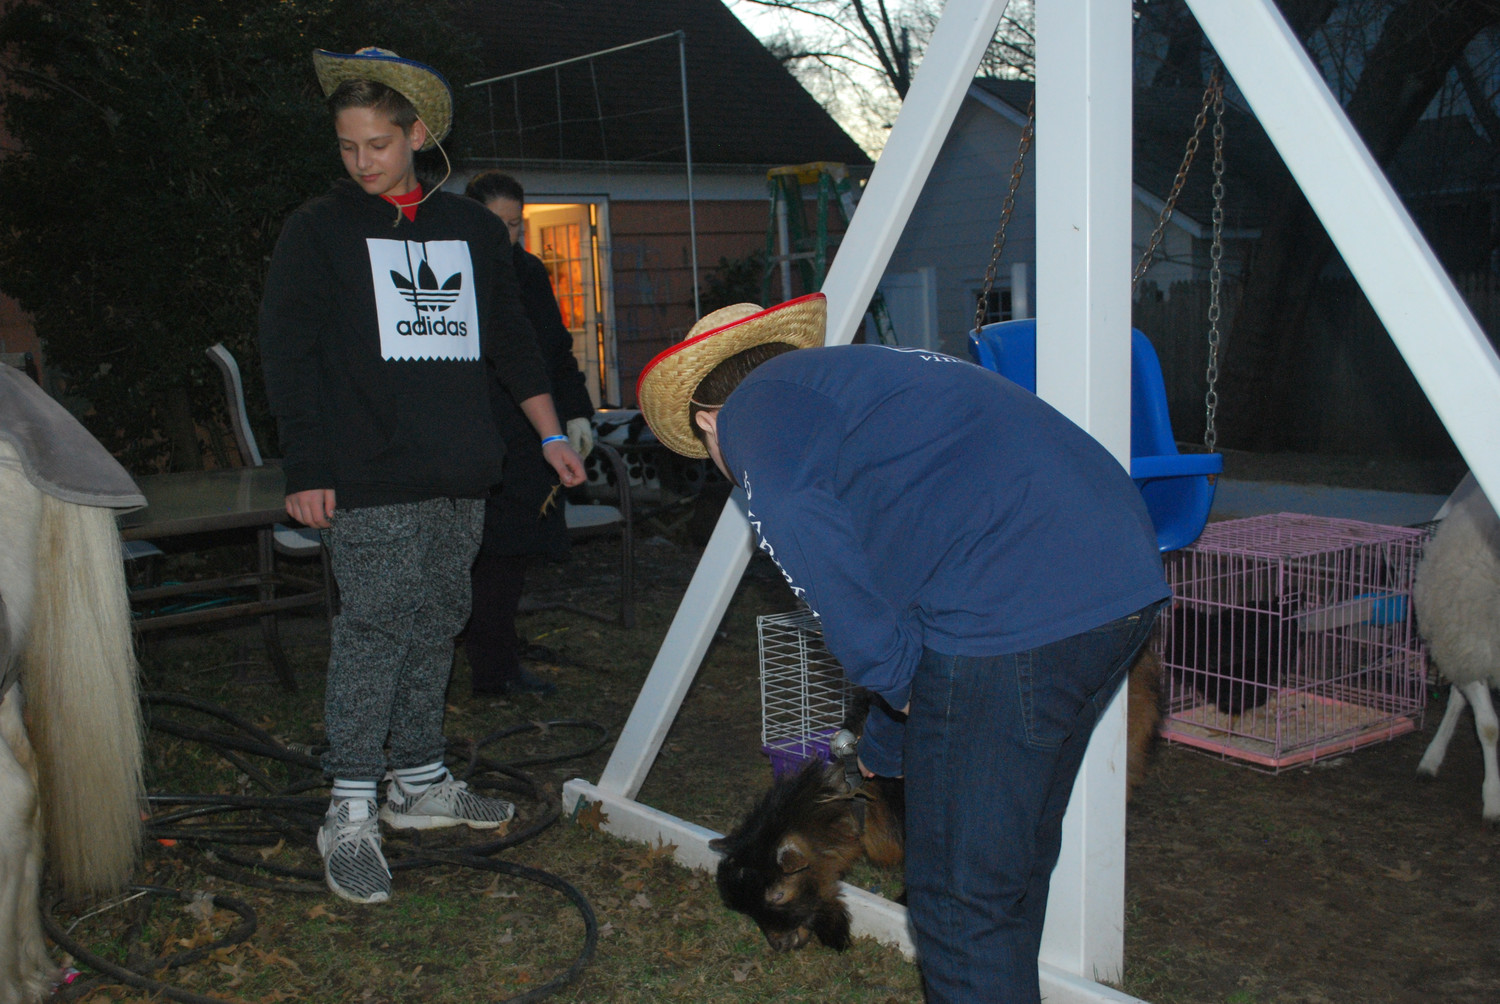 Daniel Rick, left, and Shawn Bronfman fed the farm animals in Tevye's Garden at the Purim party.